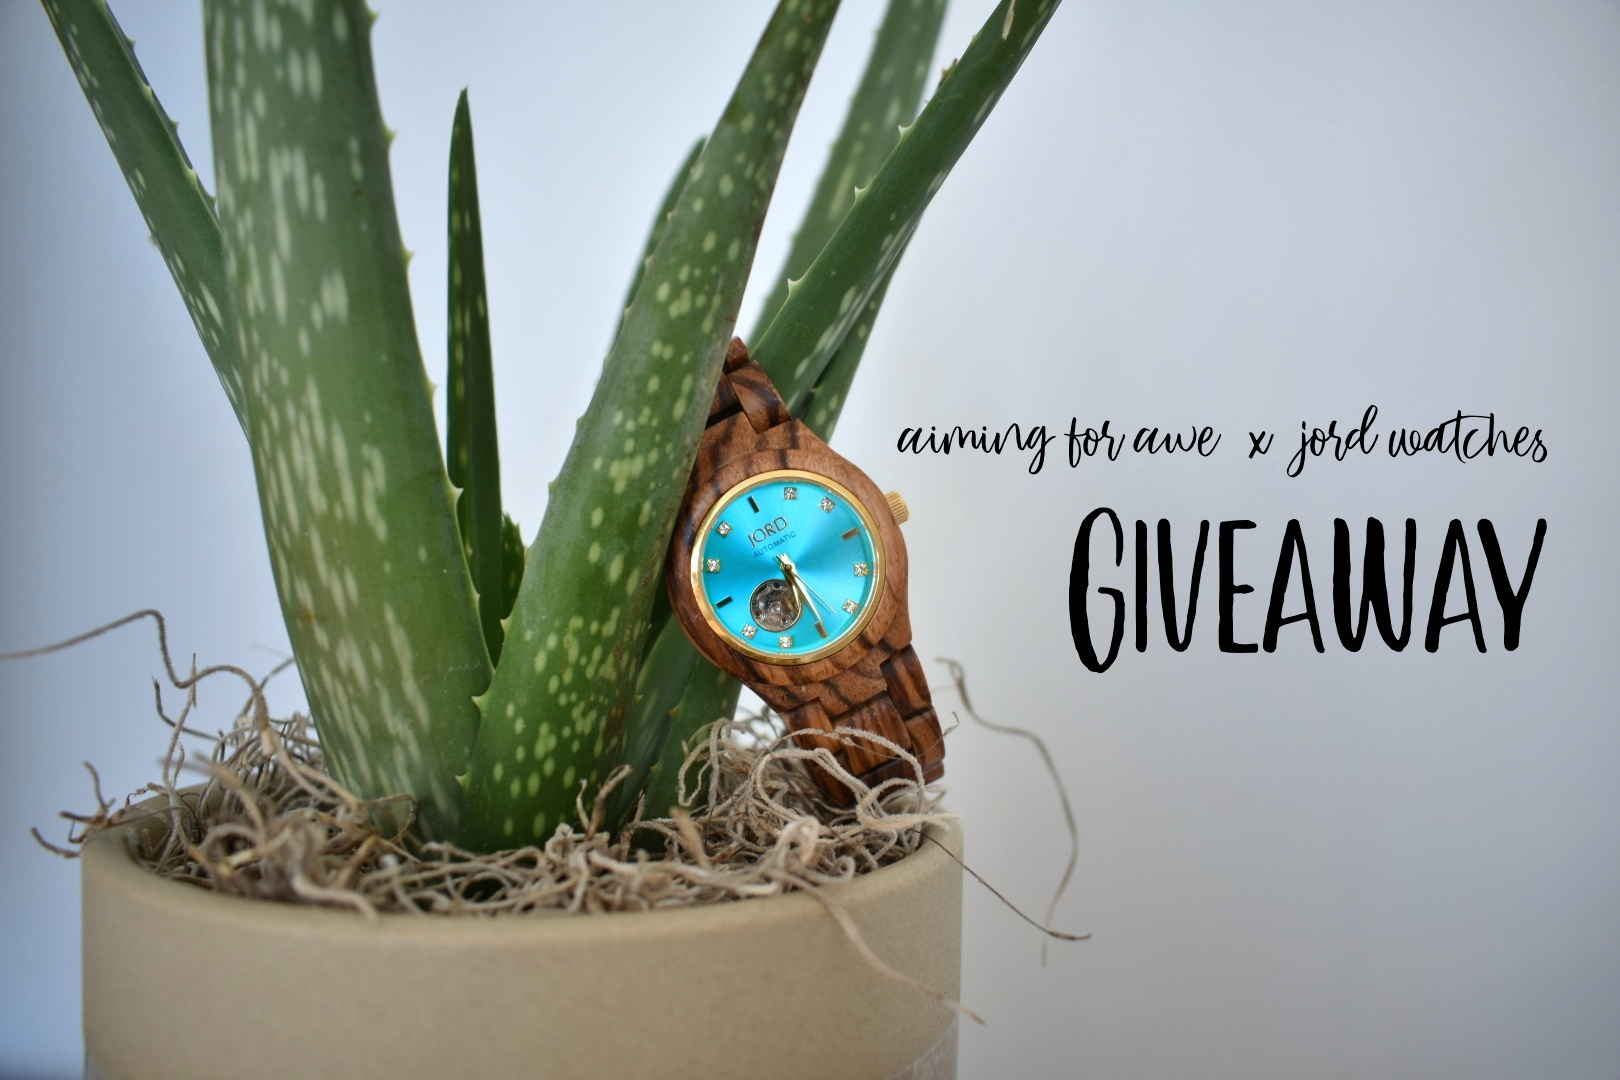 Aiming For Awe x JORD Watches Giveaway - AIMINGFORAWE.COM